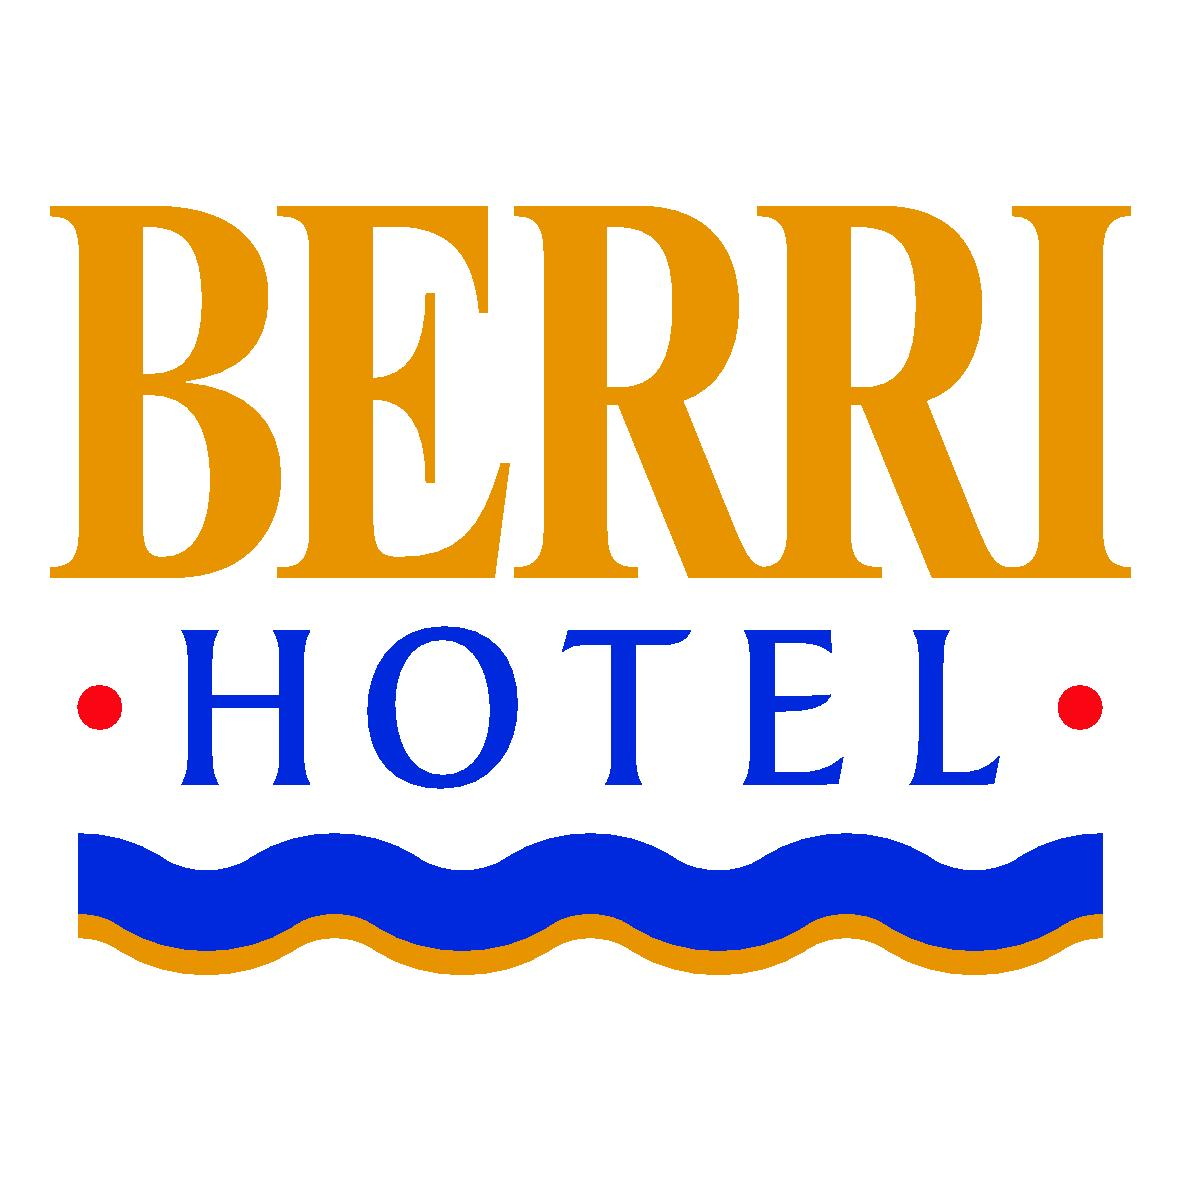 Berri Hotel - Accommodation Resorts